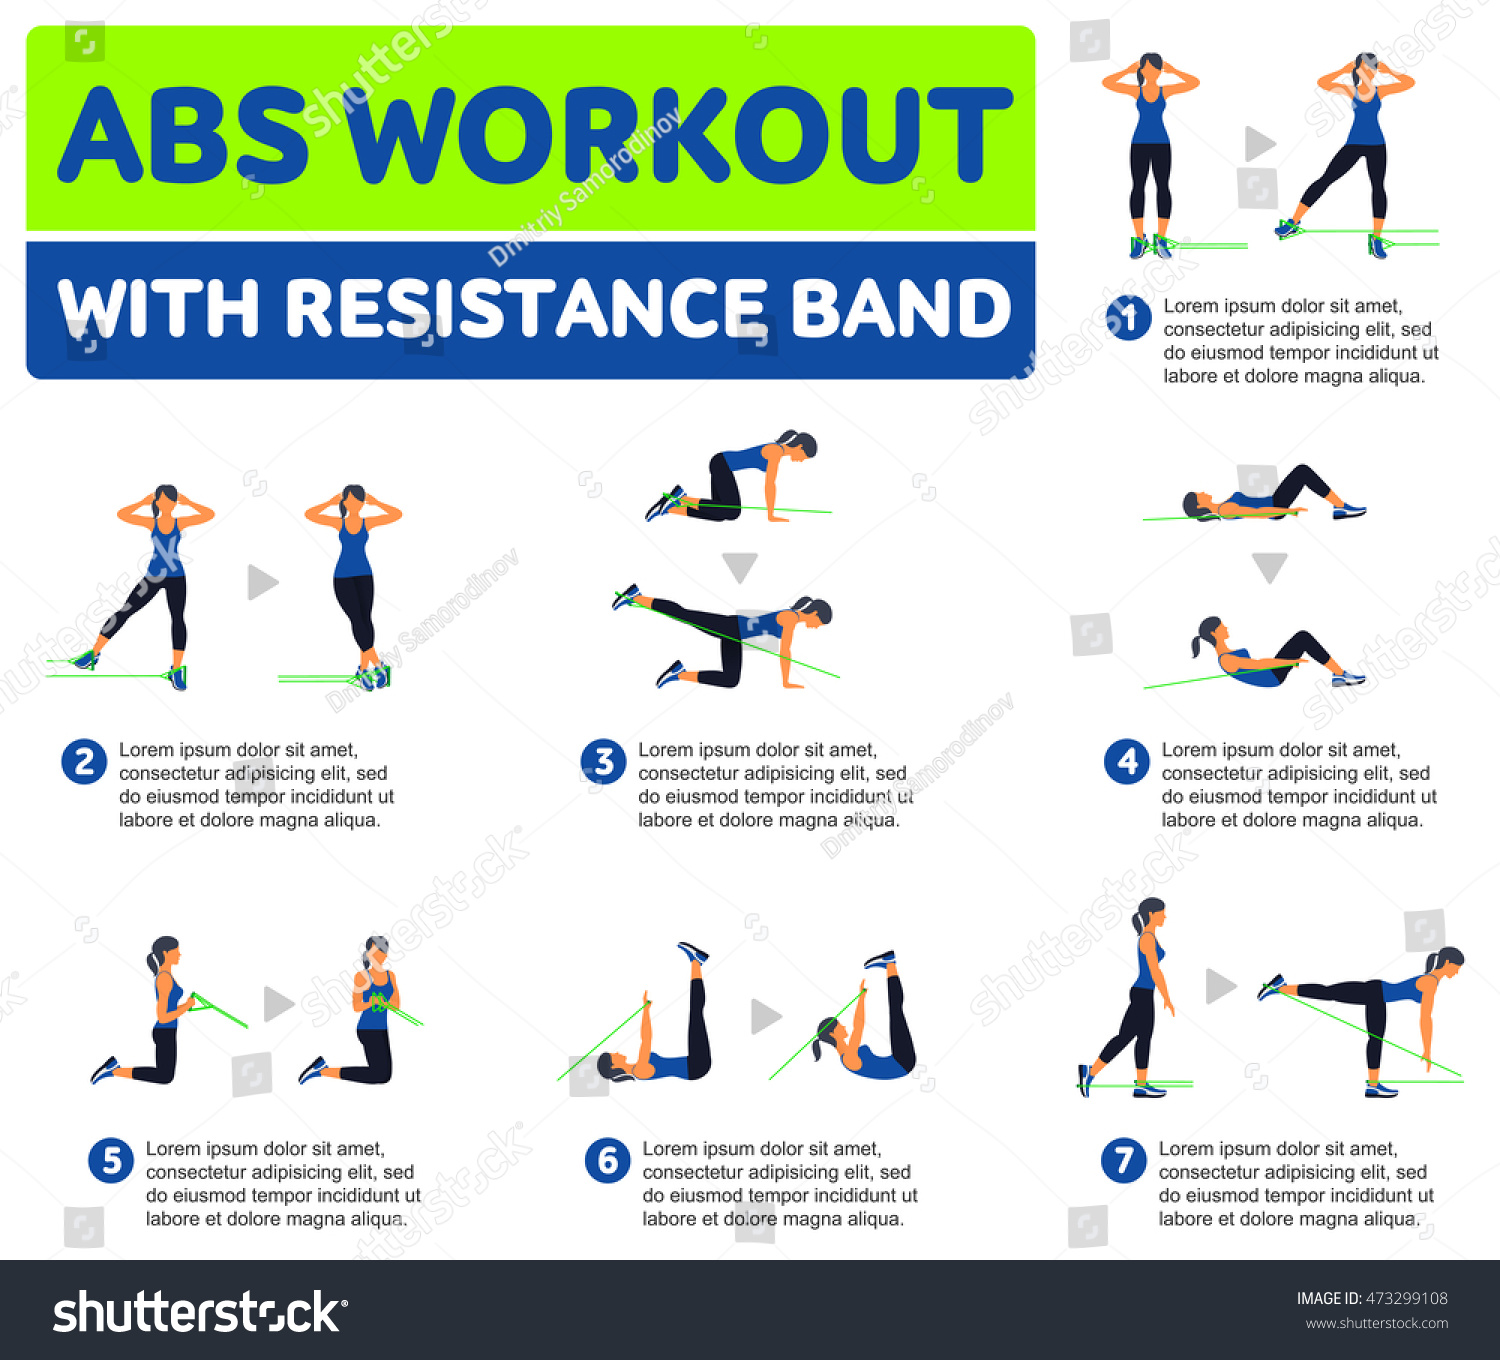 Workout Bands Music: Abs Workout Resistance Band Fitness Aerobic Stock Vector